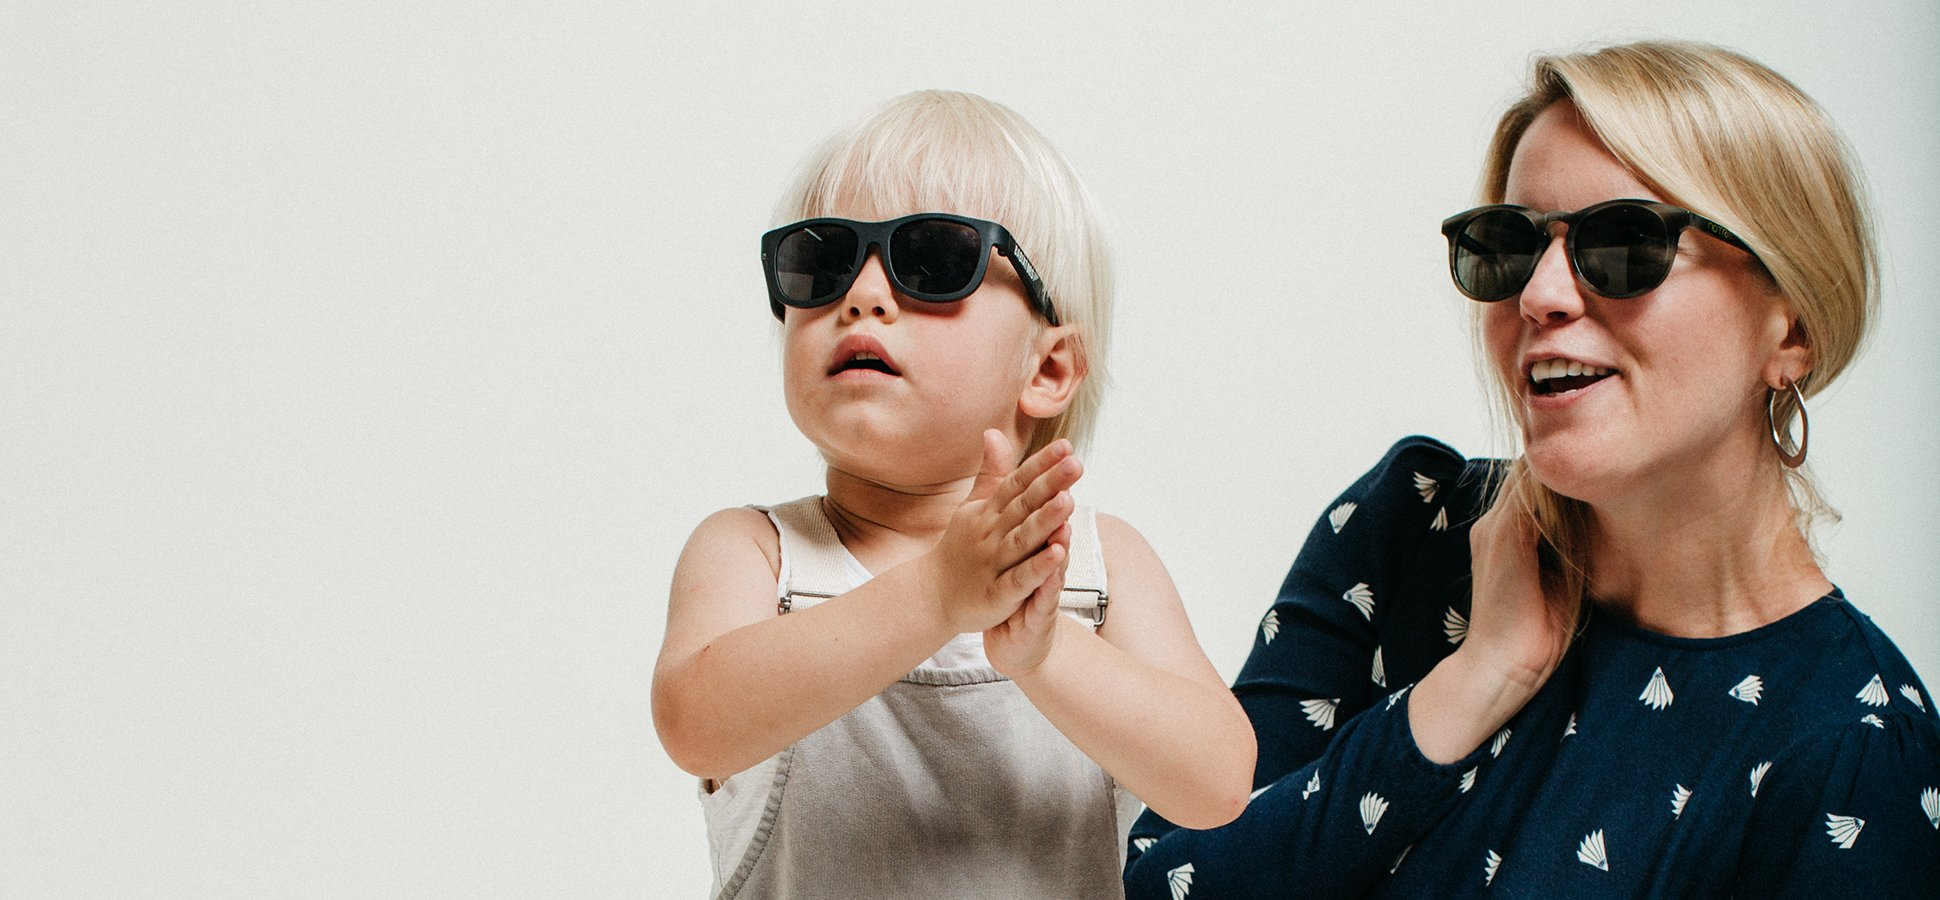 aa7f92bdcdb How Celebrity Kids Made This Startup s Product the Biggest Hit of the Summer